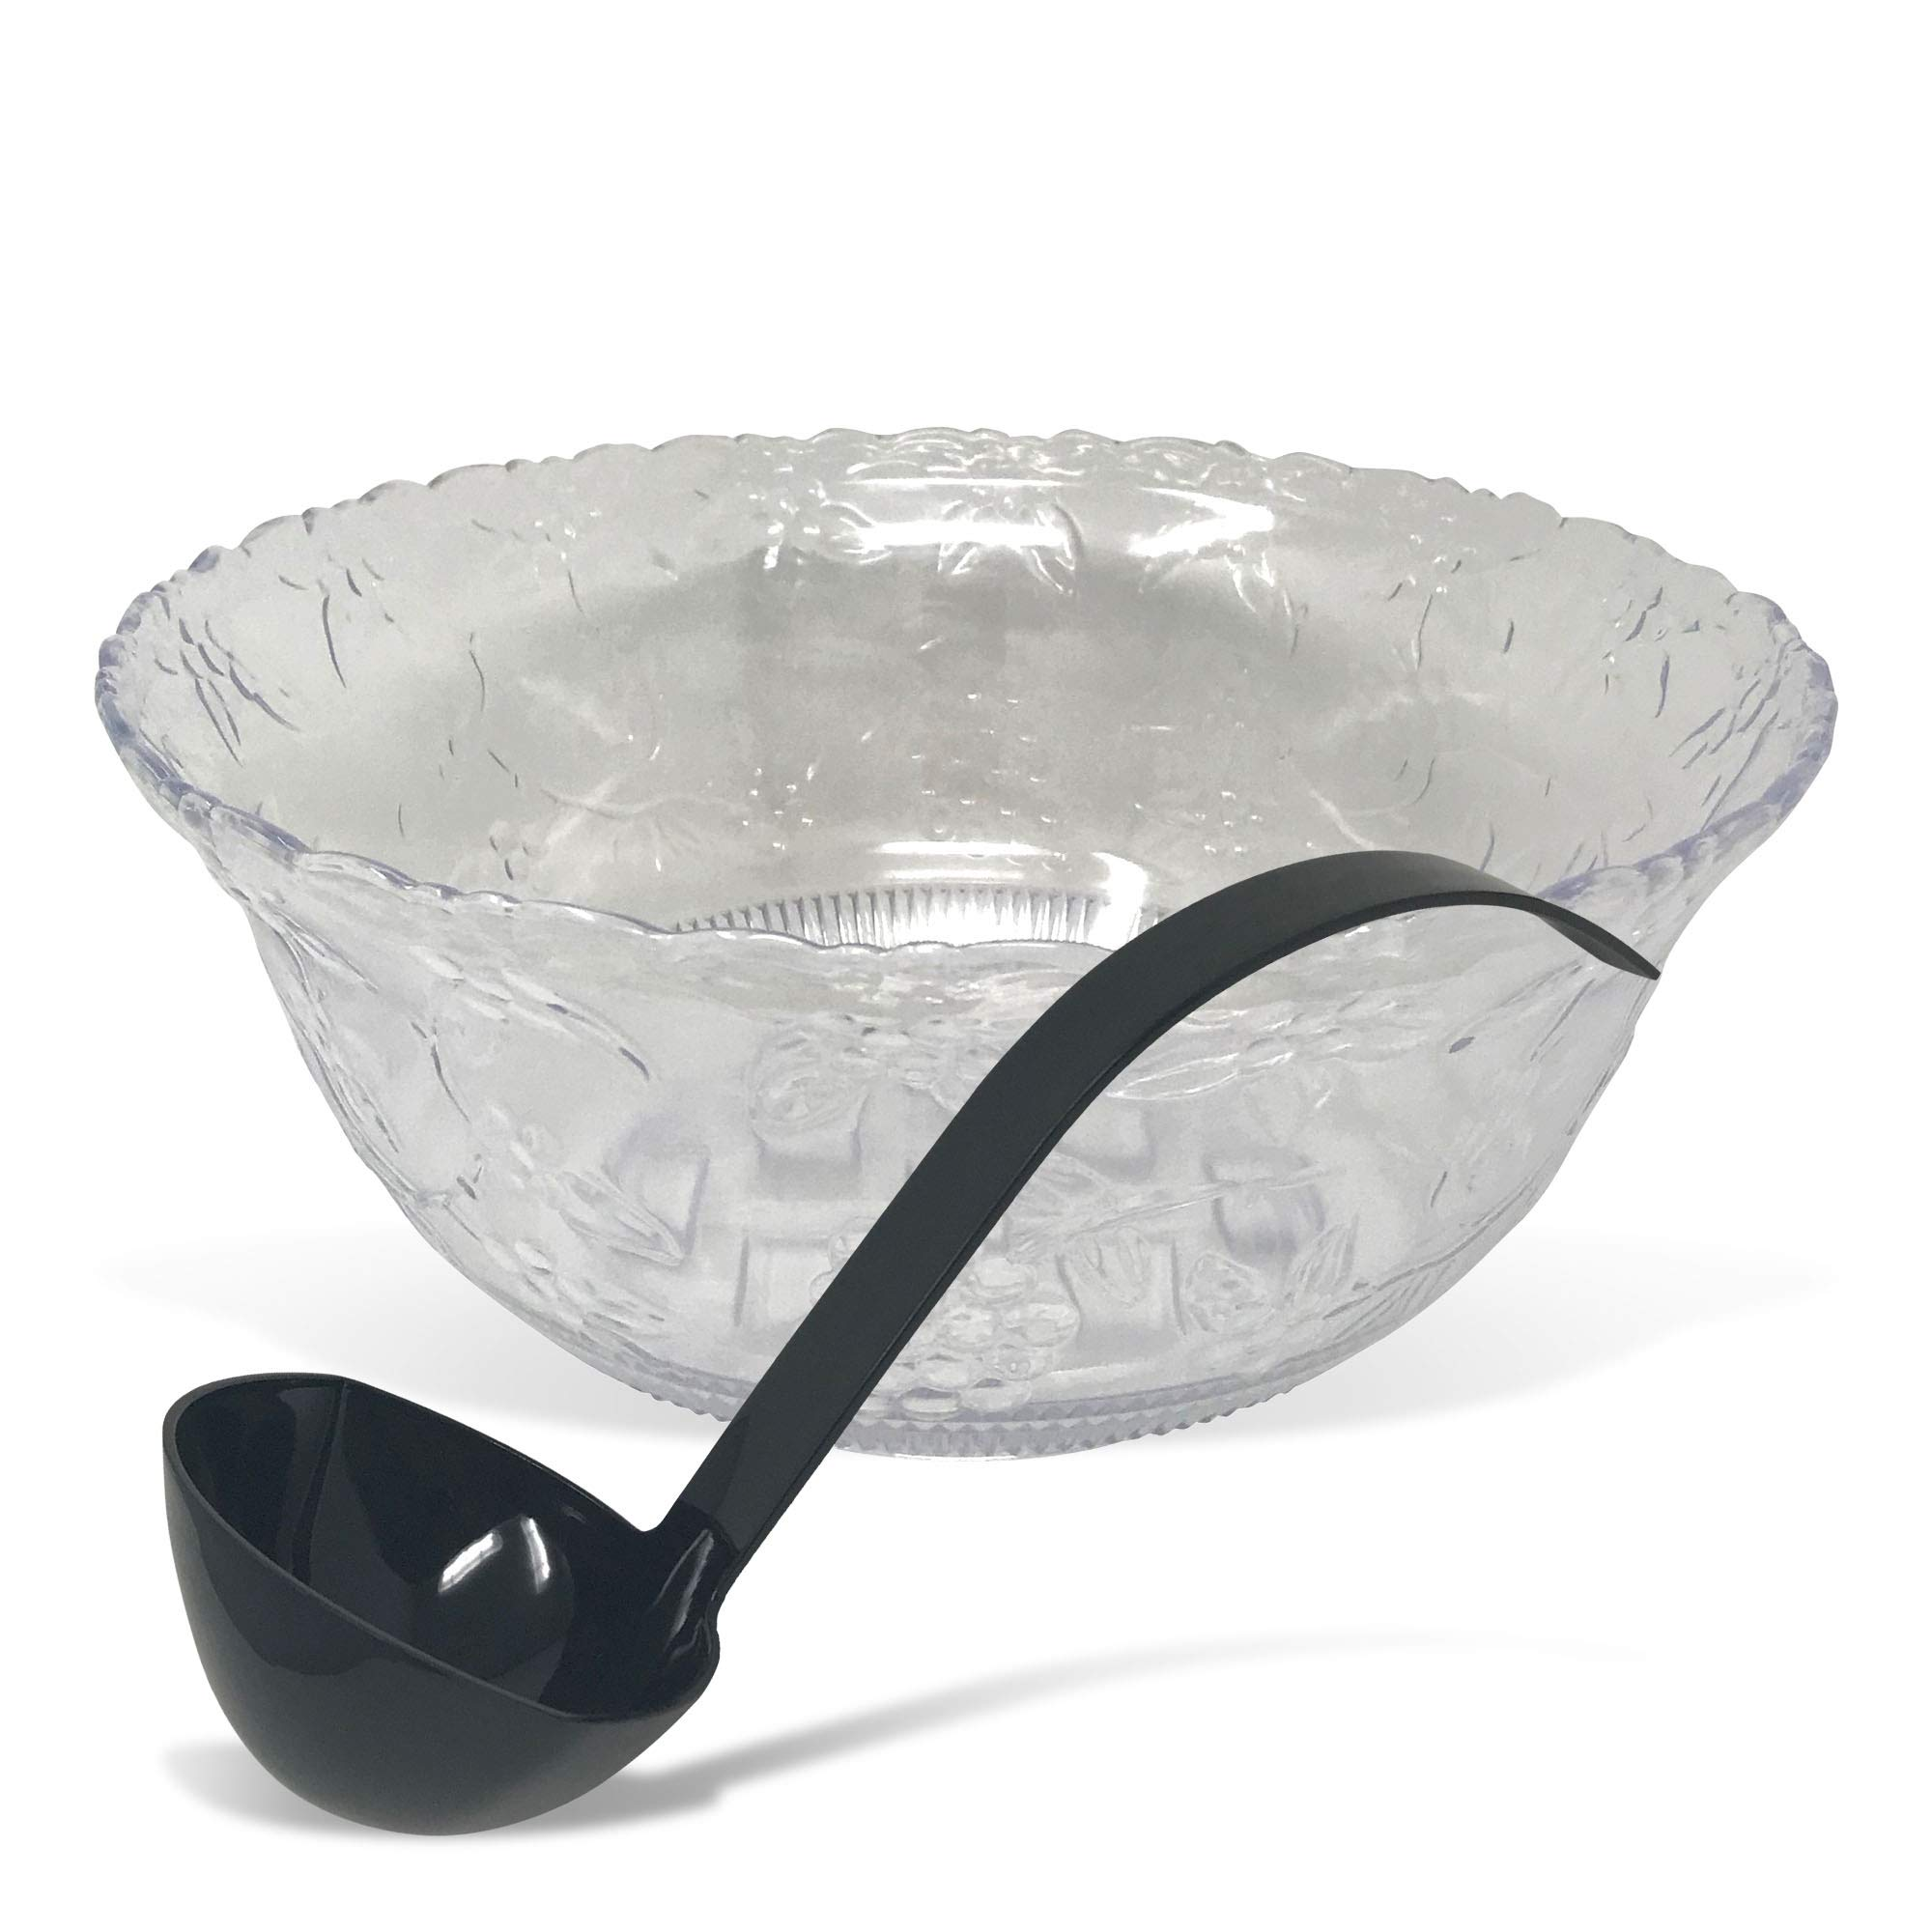 CSBD Punch Bowl 2 Gallon Premium Quality Plastic With 5 oz Ladle by CSBD